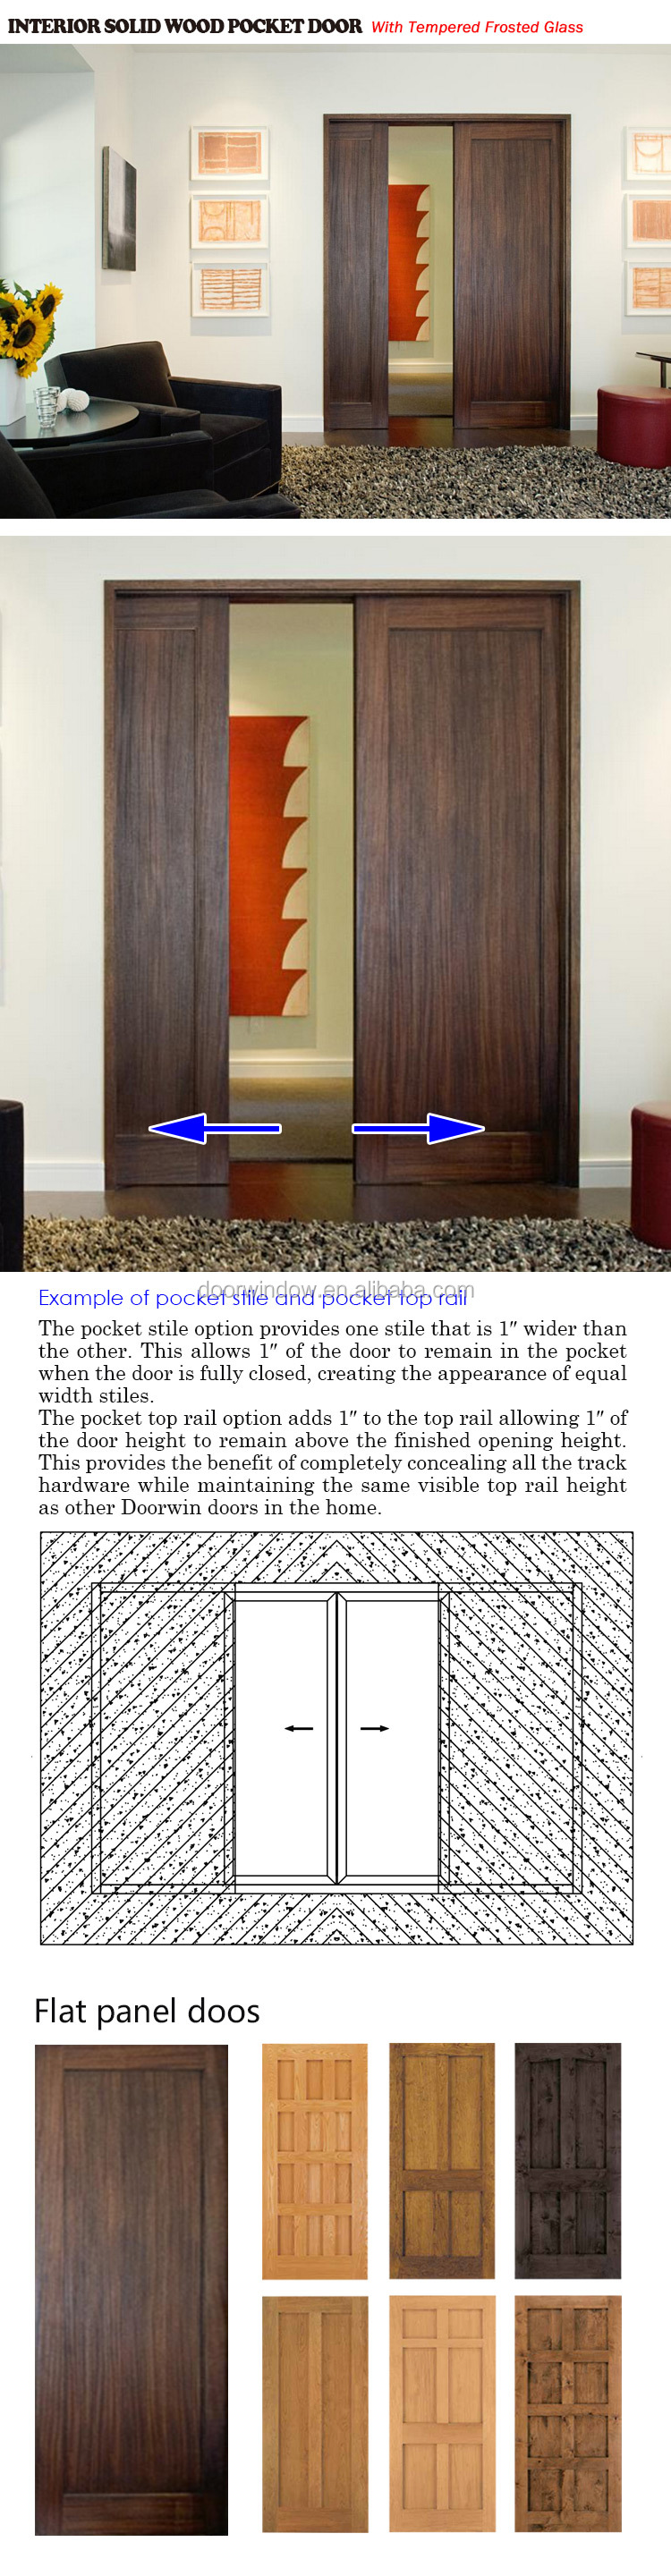 luxury interior wood door concealing sliding pocket door with invisible track